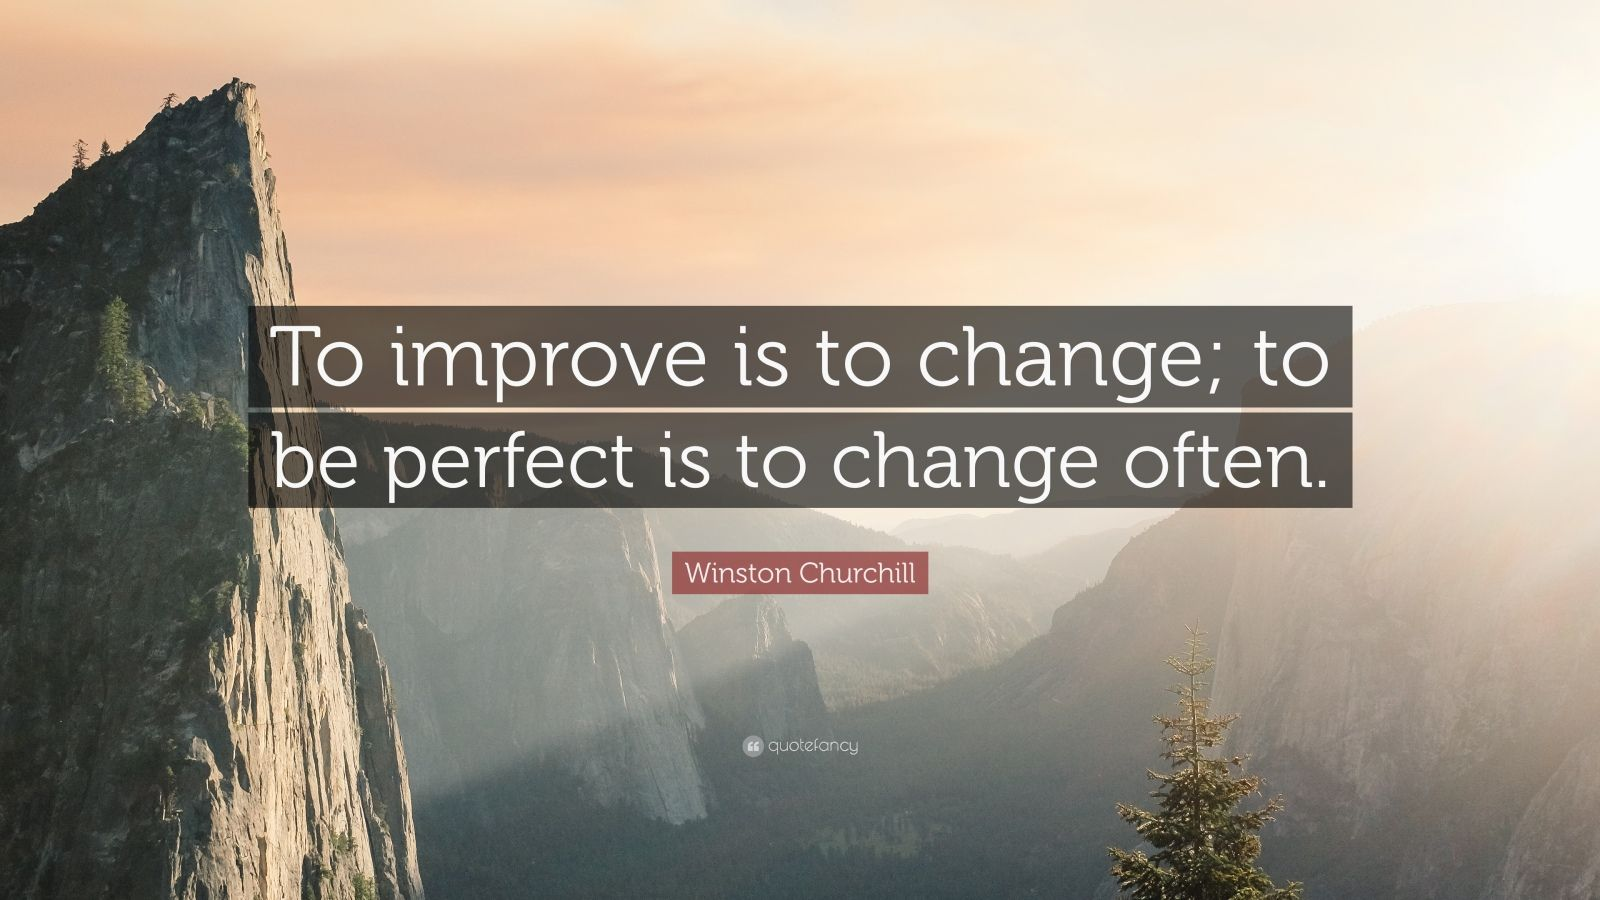 Persistence Quotes Wallpapers Winston Churchill Quote To Improve Is To Change To Be